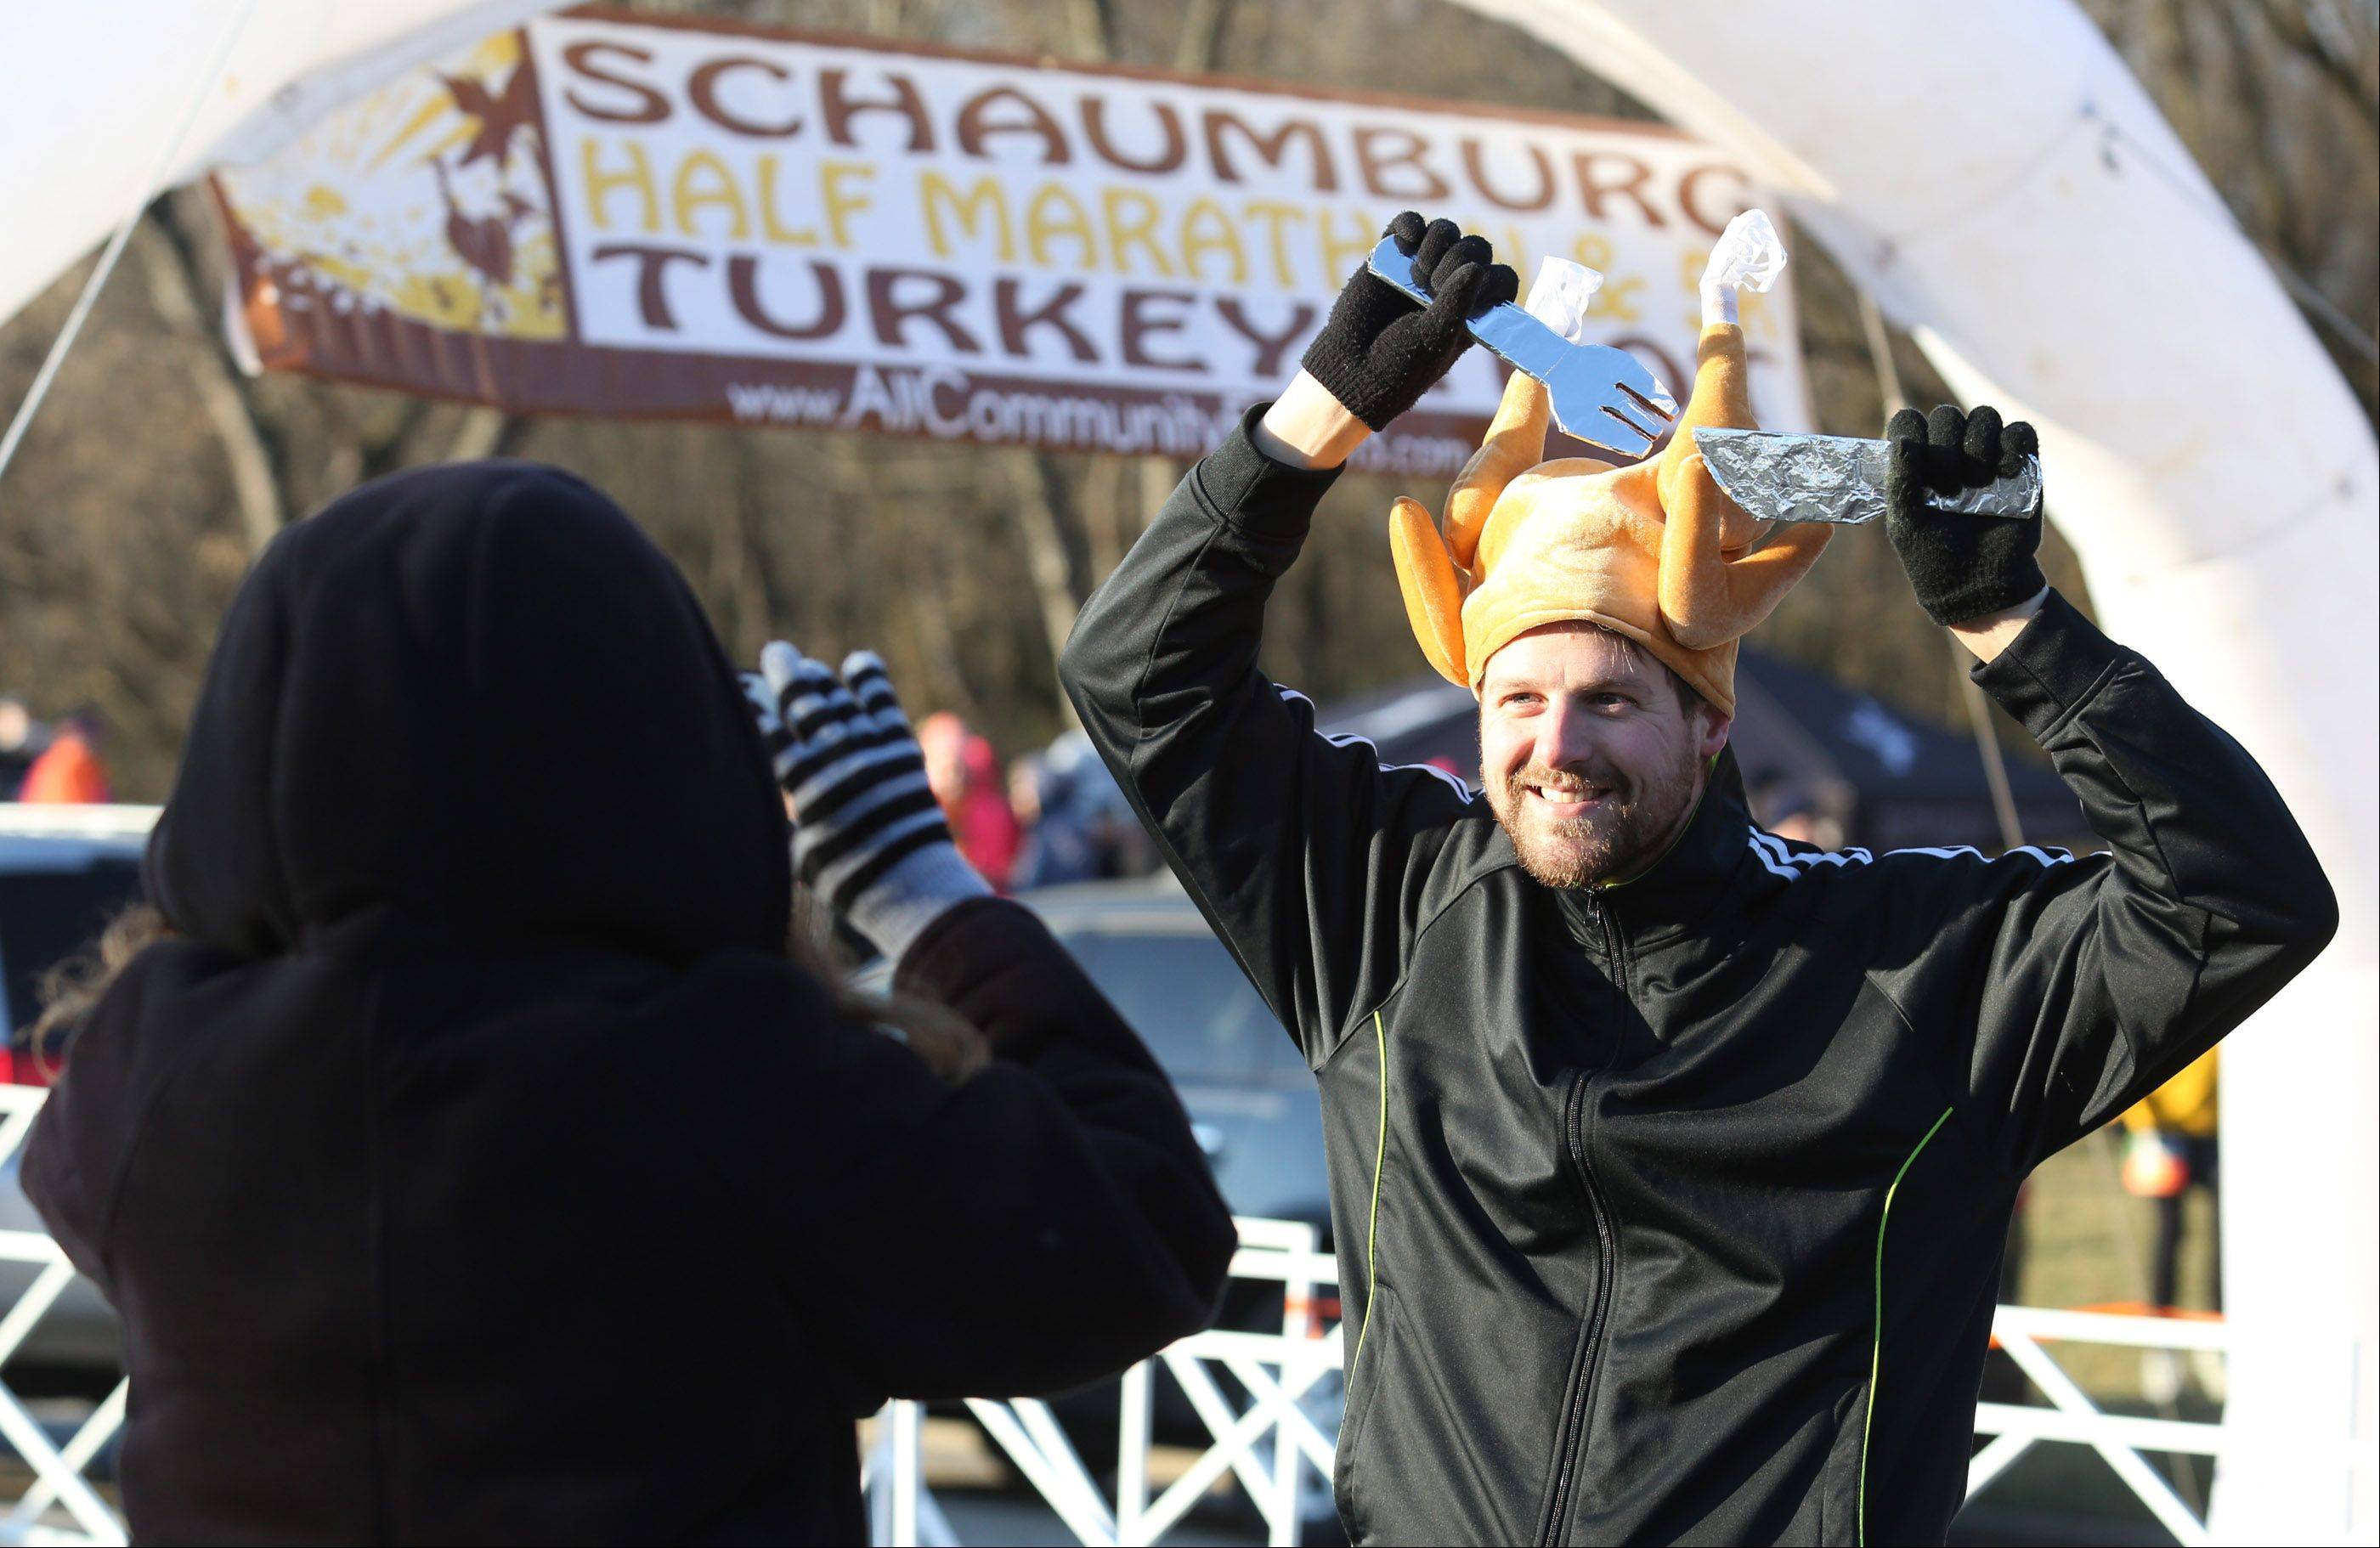 Wesley Dickson of Bolingbrook has his picture taken by his wife, Karen, at the starting line for the Schaumburg 5K Turkey Trot Saturday in Busse Woods near Schaumburg.